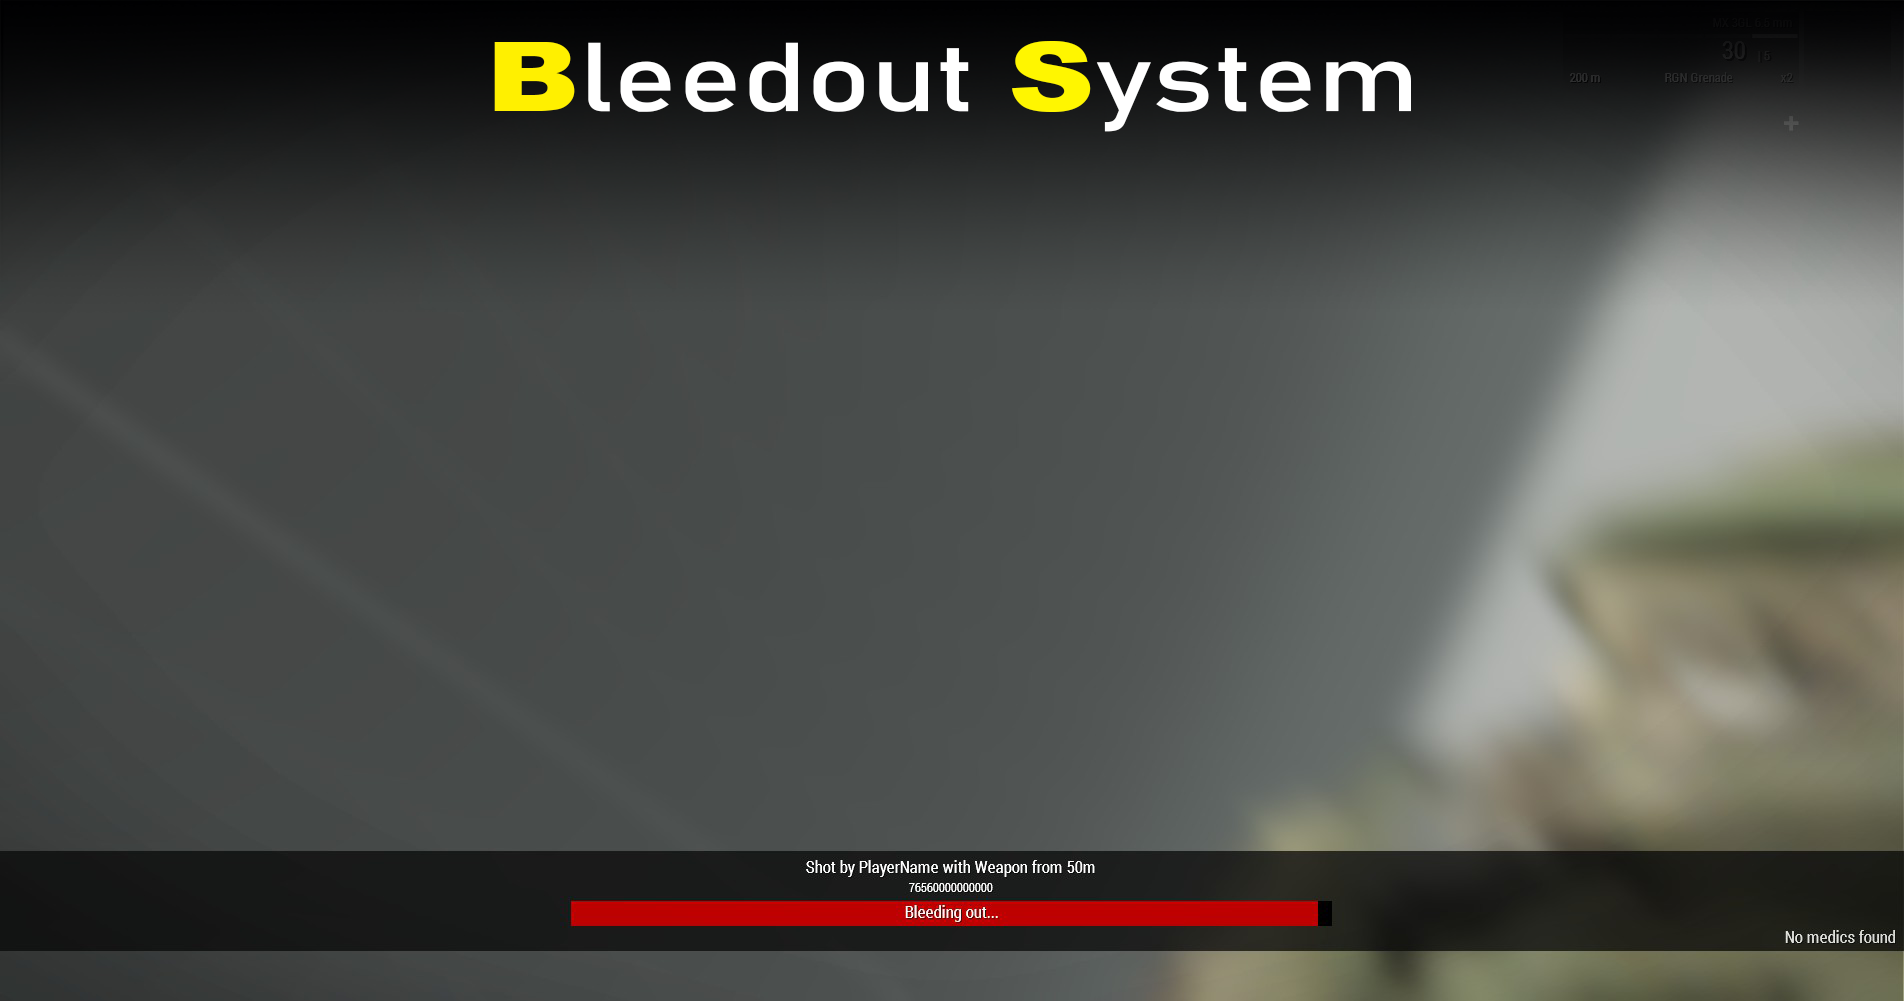 Bleedout System